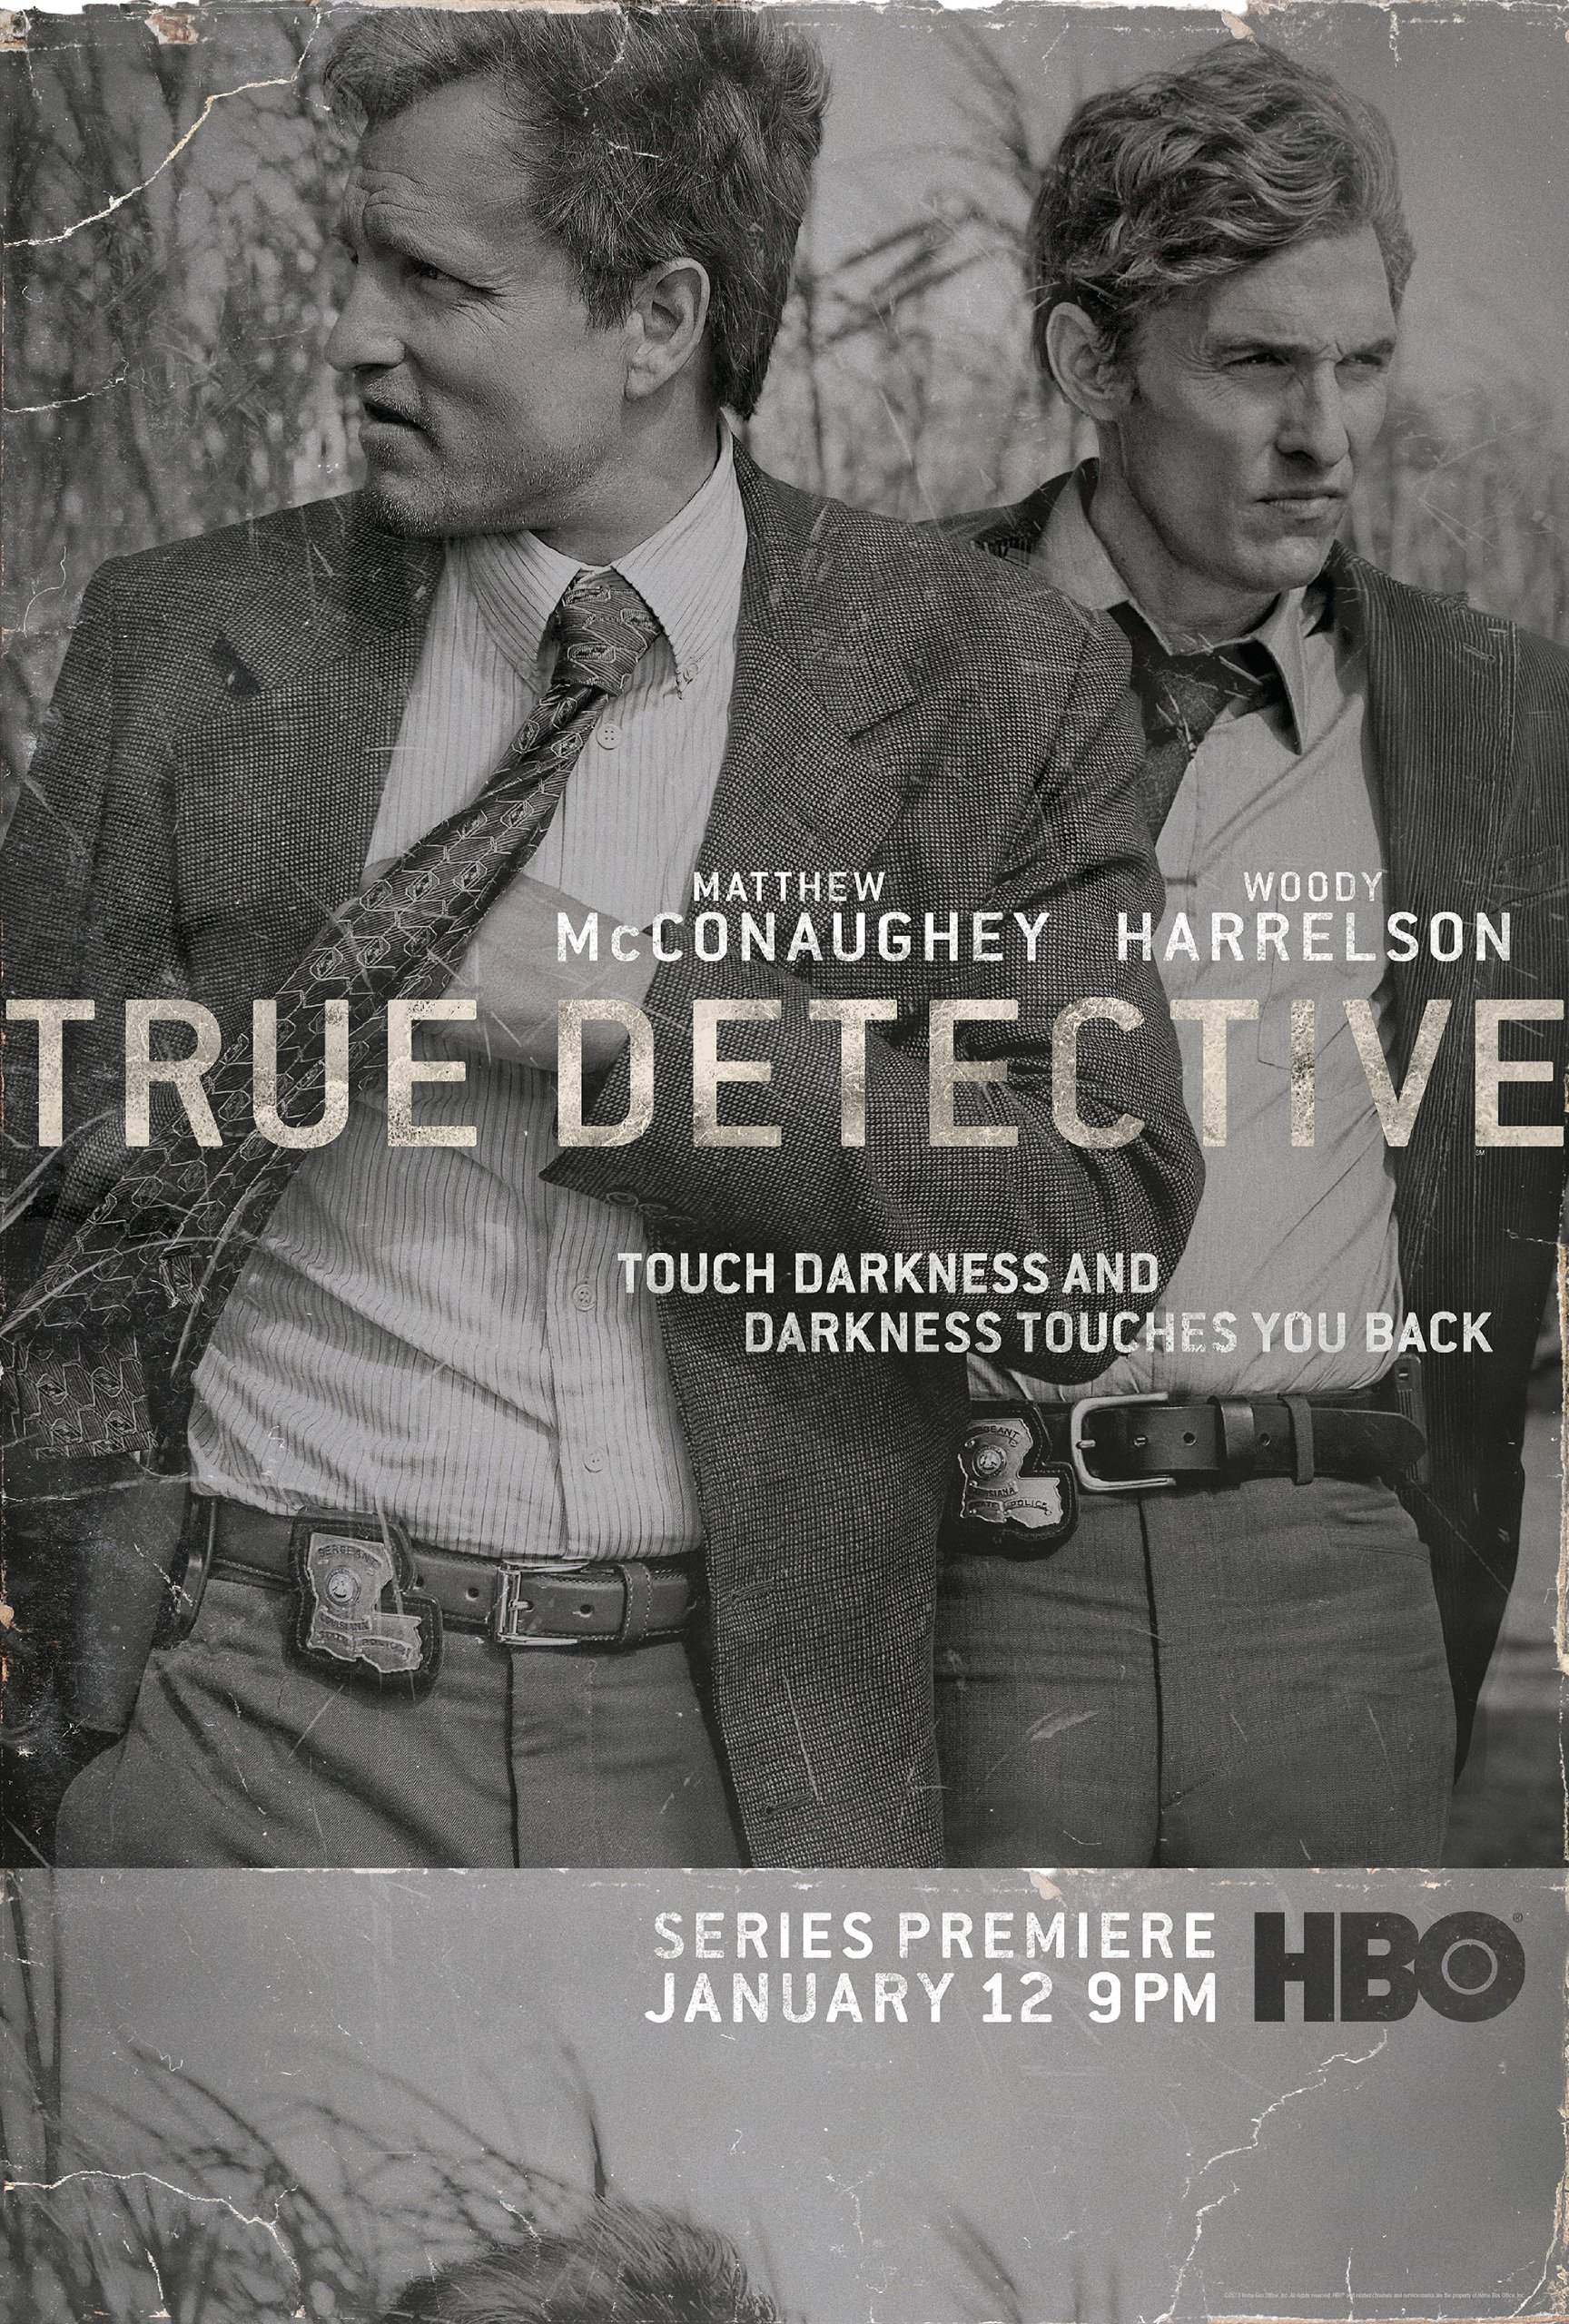 True Detective Fans: Have You Read The King In Yellow?